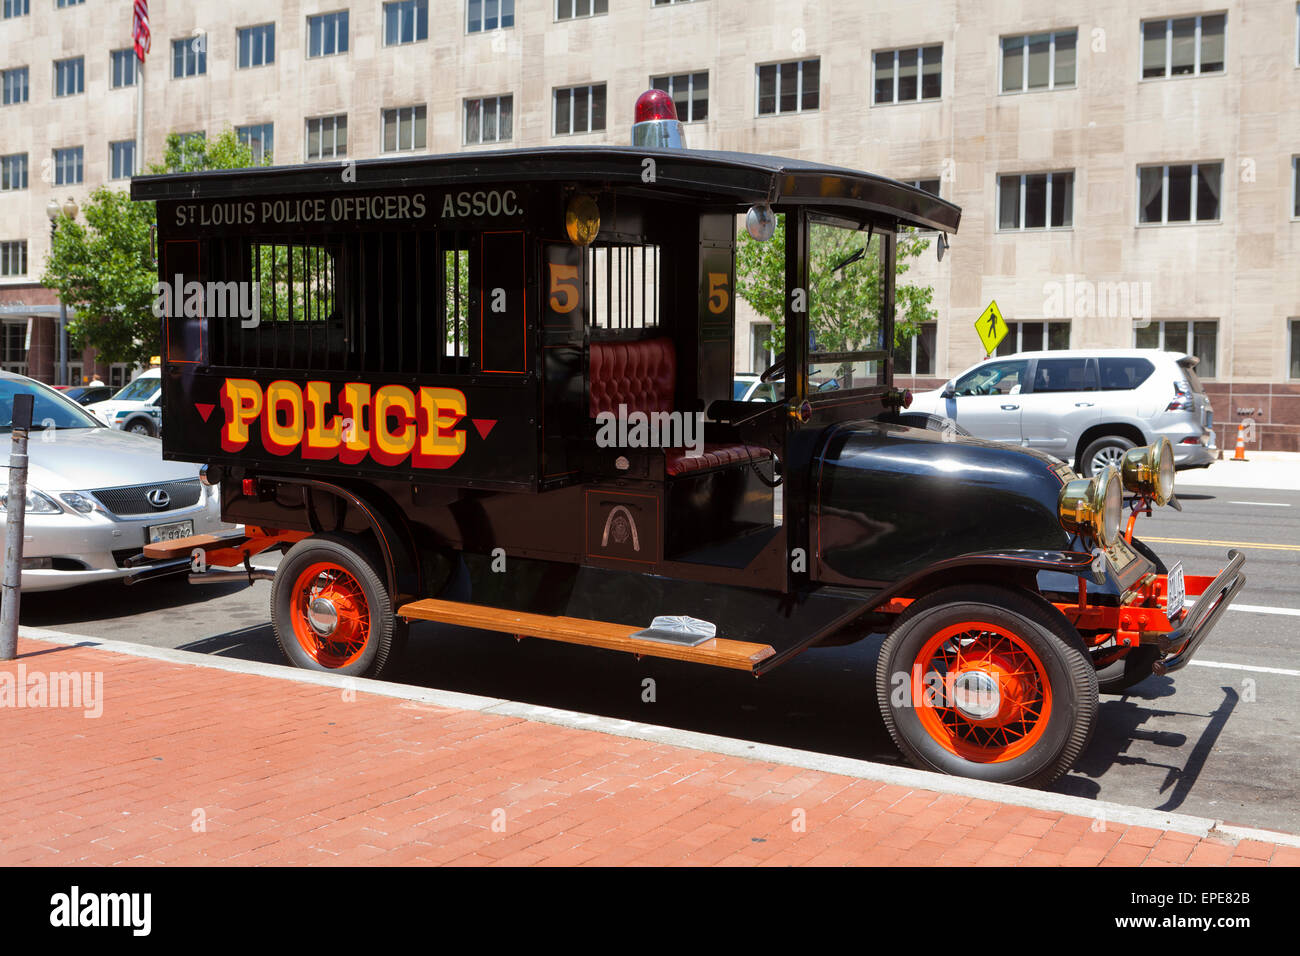 St. Louis Police Officers Association vintage police paddy wagon - USA - Stock Image